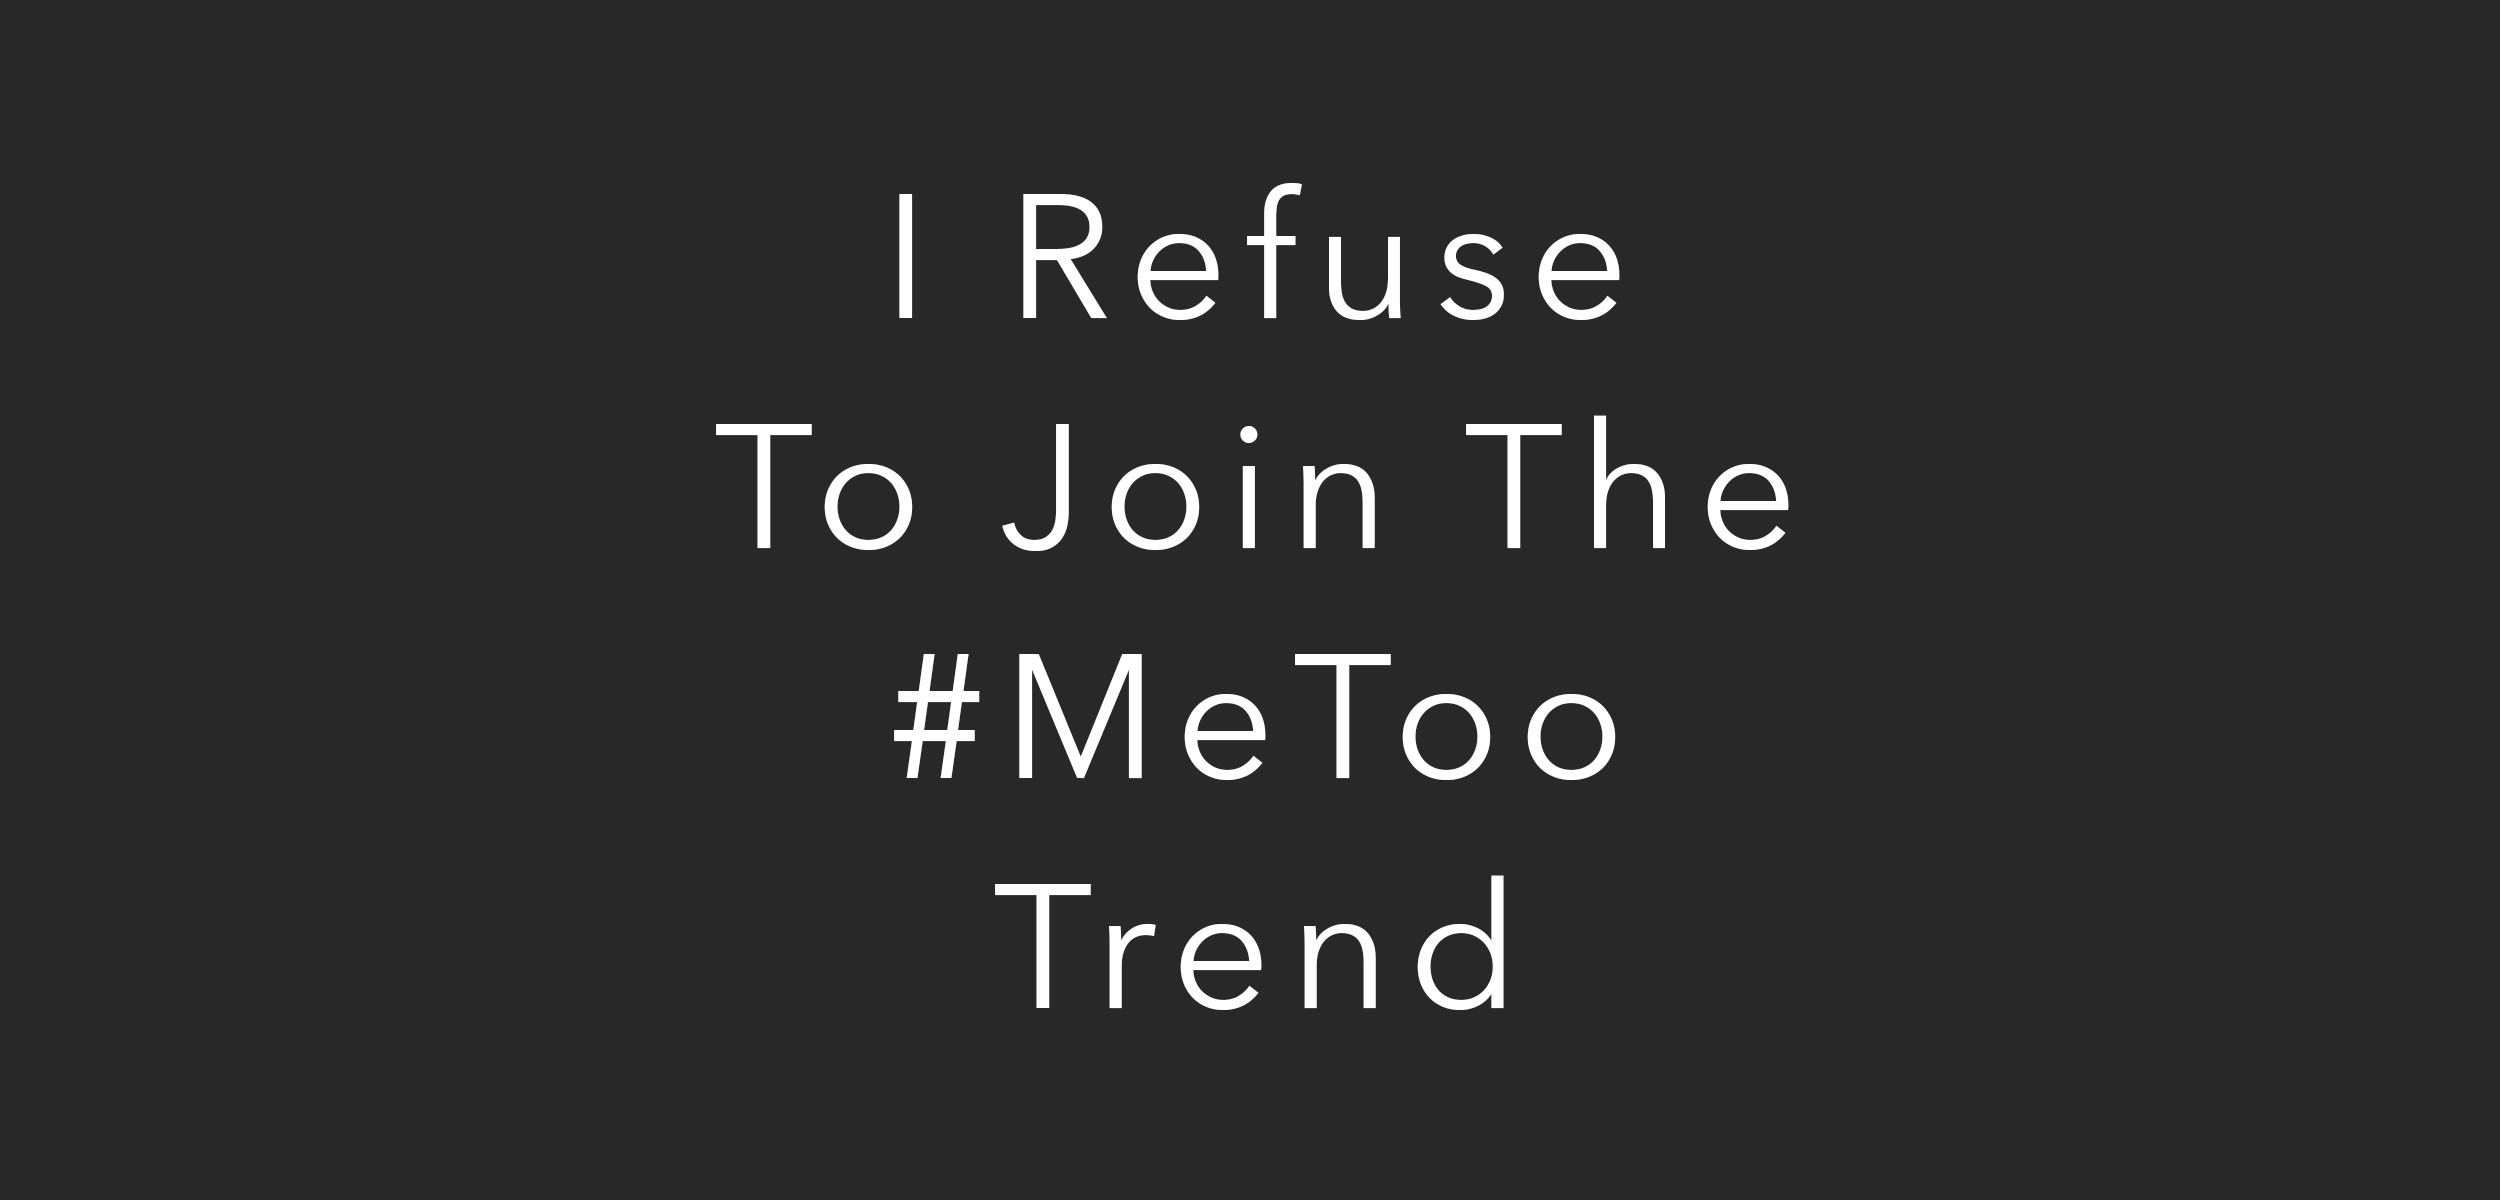 I refuse to join the #MeToo trend